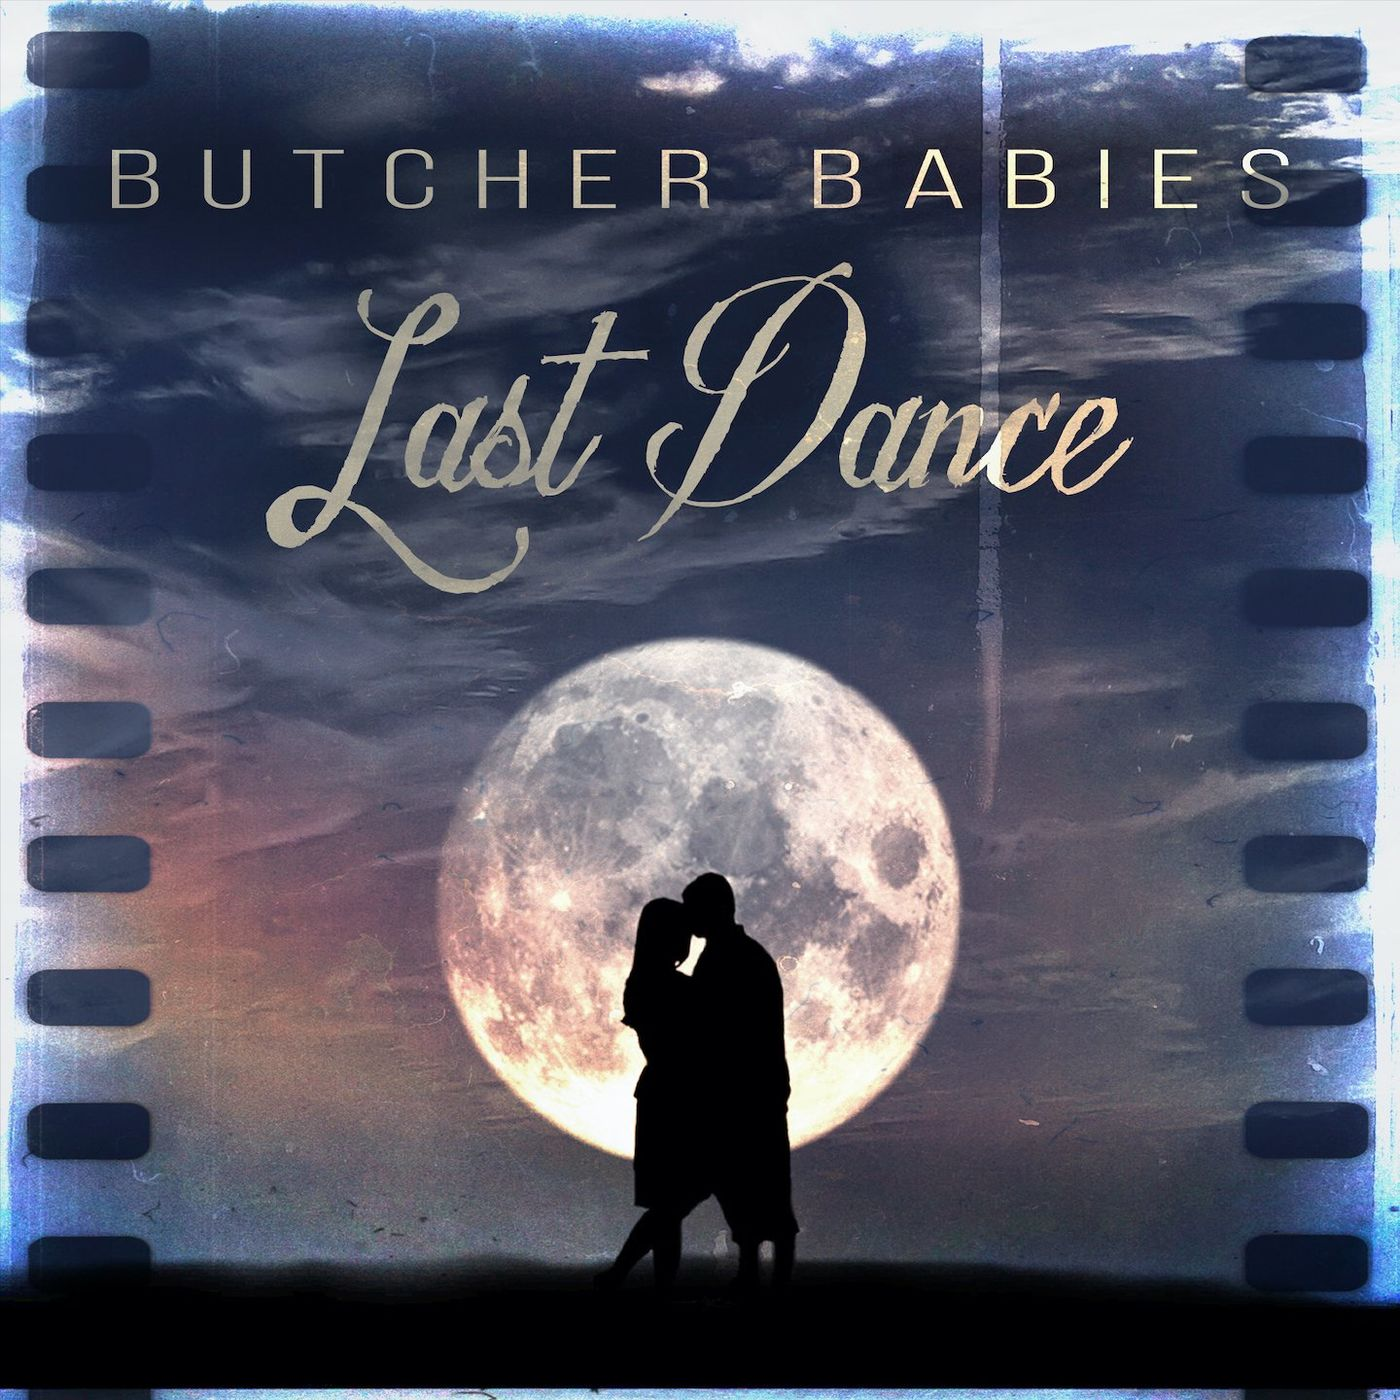 Butcher Babies - Last Dance [single] (2021)